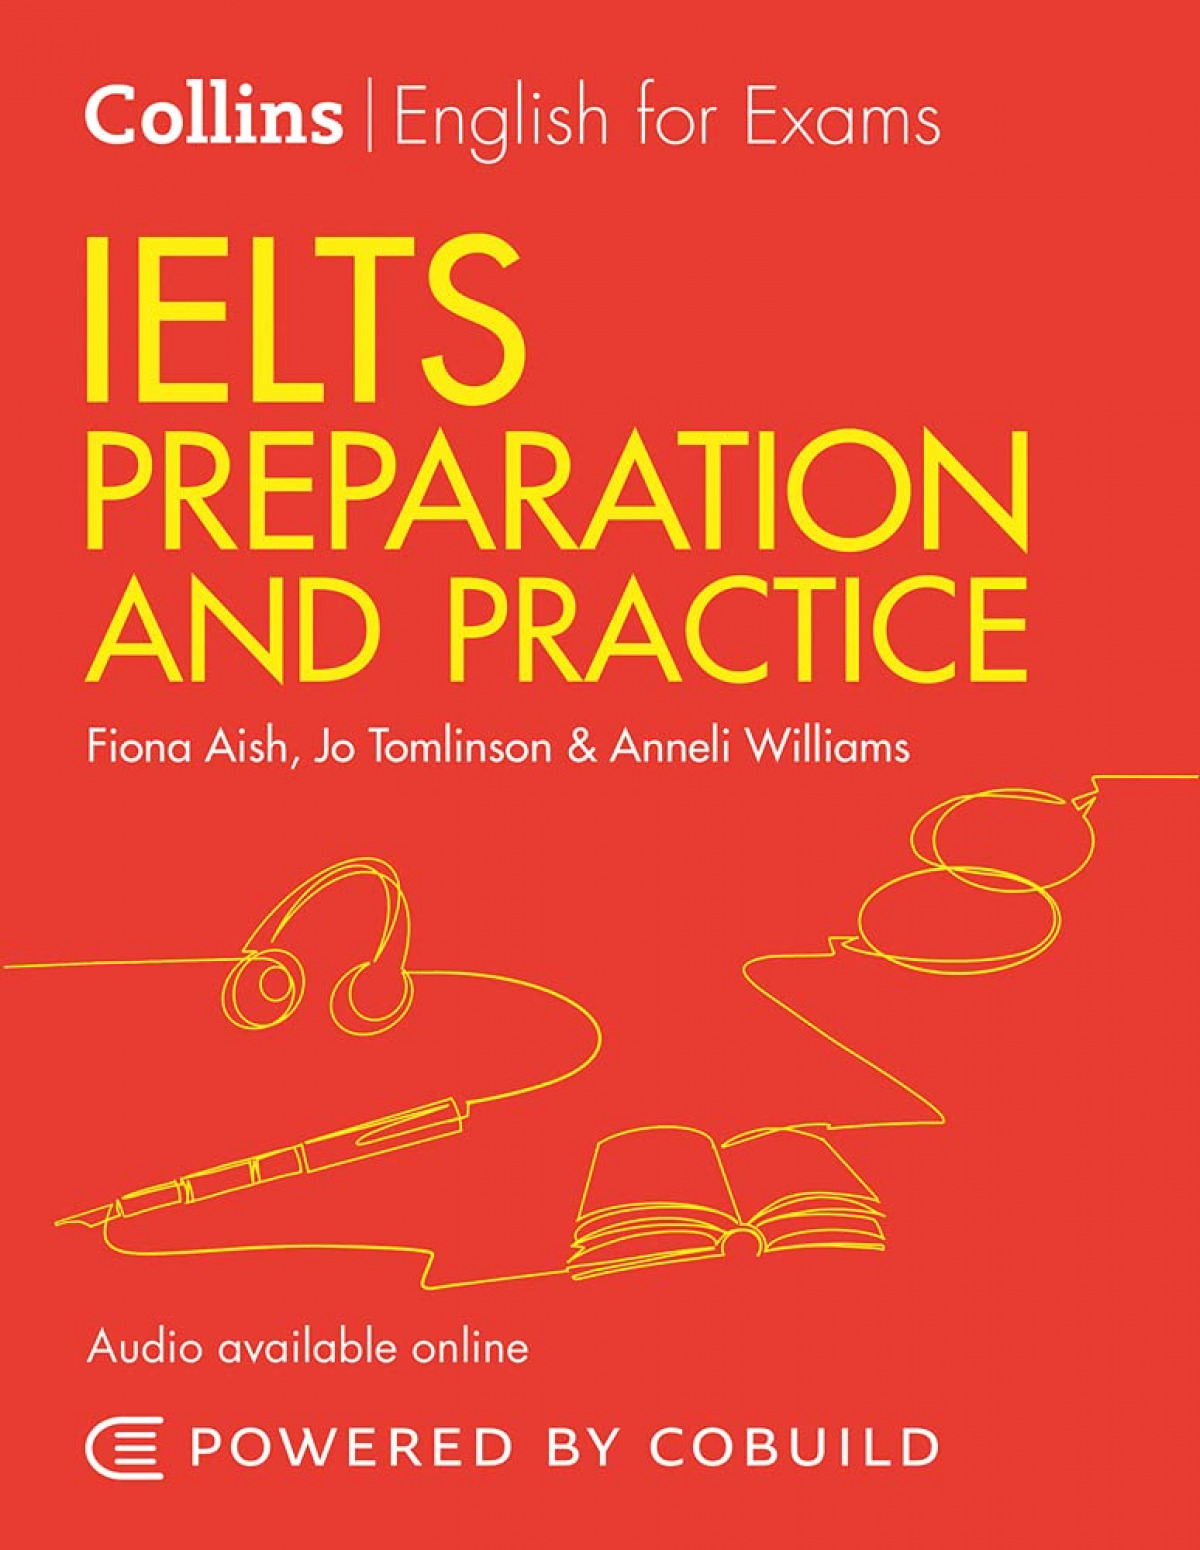 Collins English for Examins - IELTS Preparation and Practice